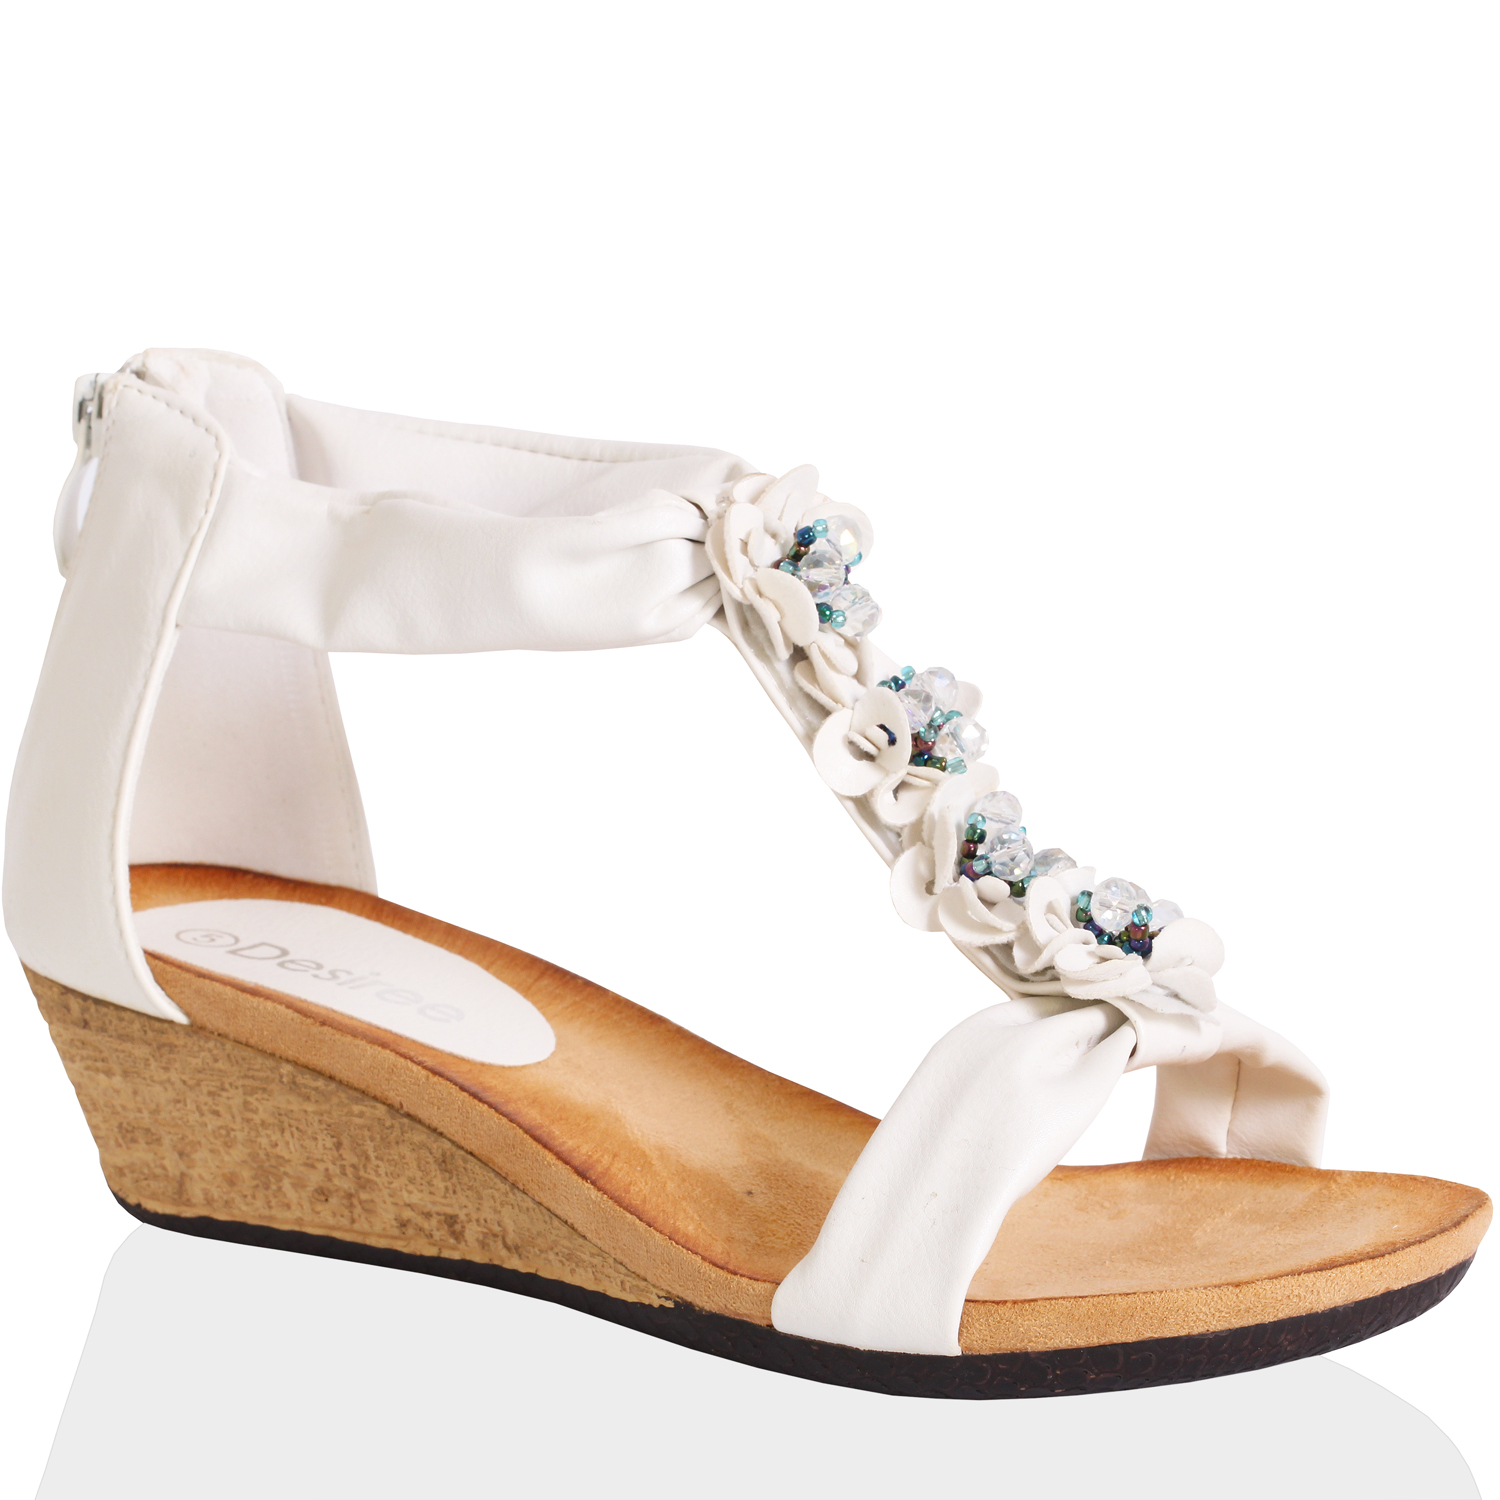 WOMENS-LADIES-LOW-WEDGE-HEEL-FASHION-DIAMANTE-FLOWER-ZIP-SANDALS-SUMMER-SIZE